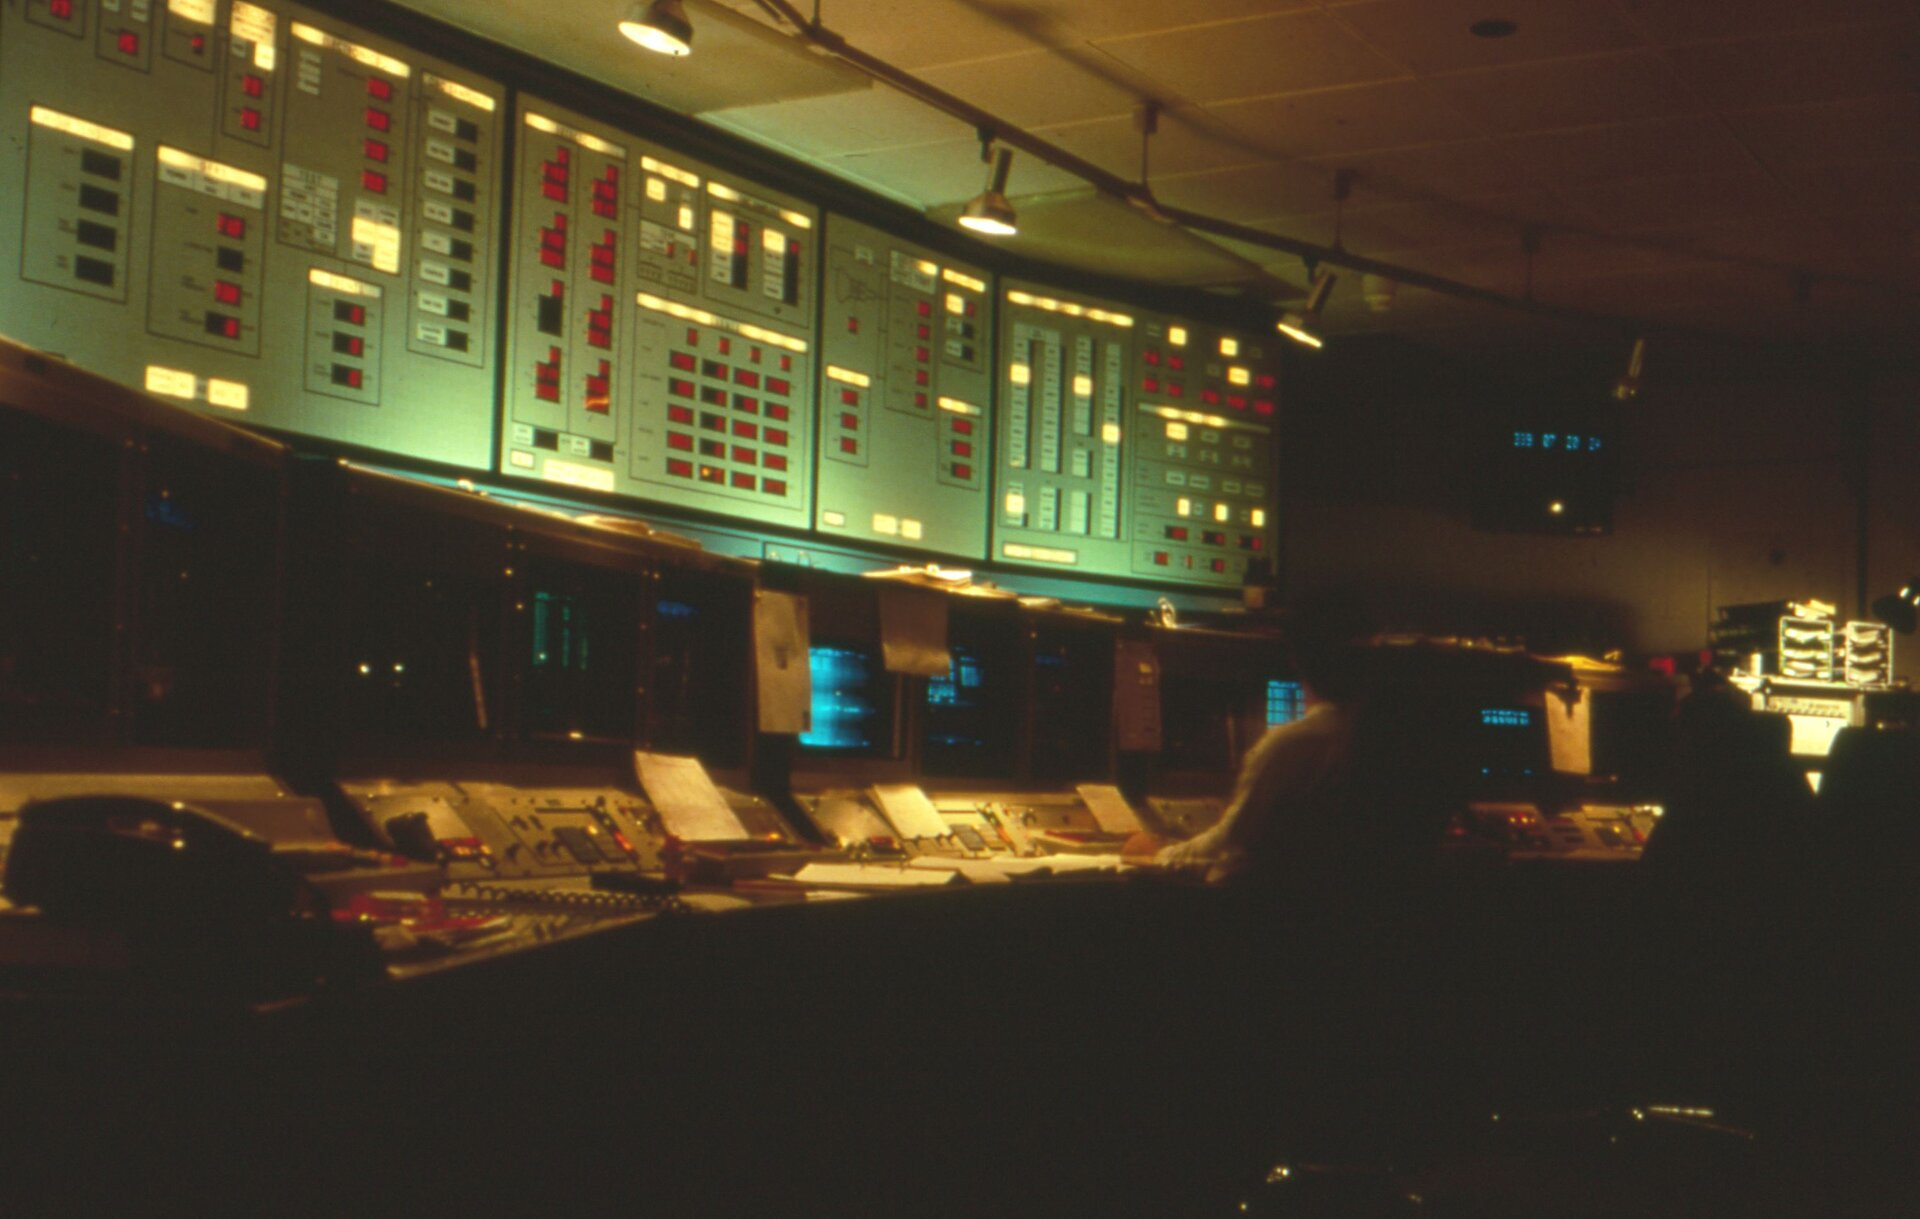 Exosat control room in 1983